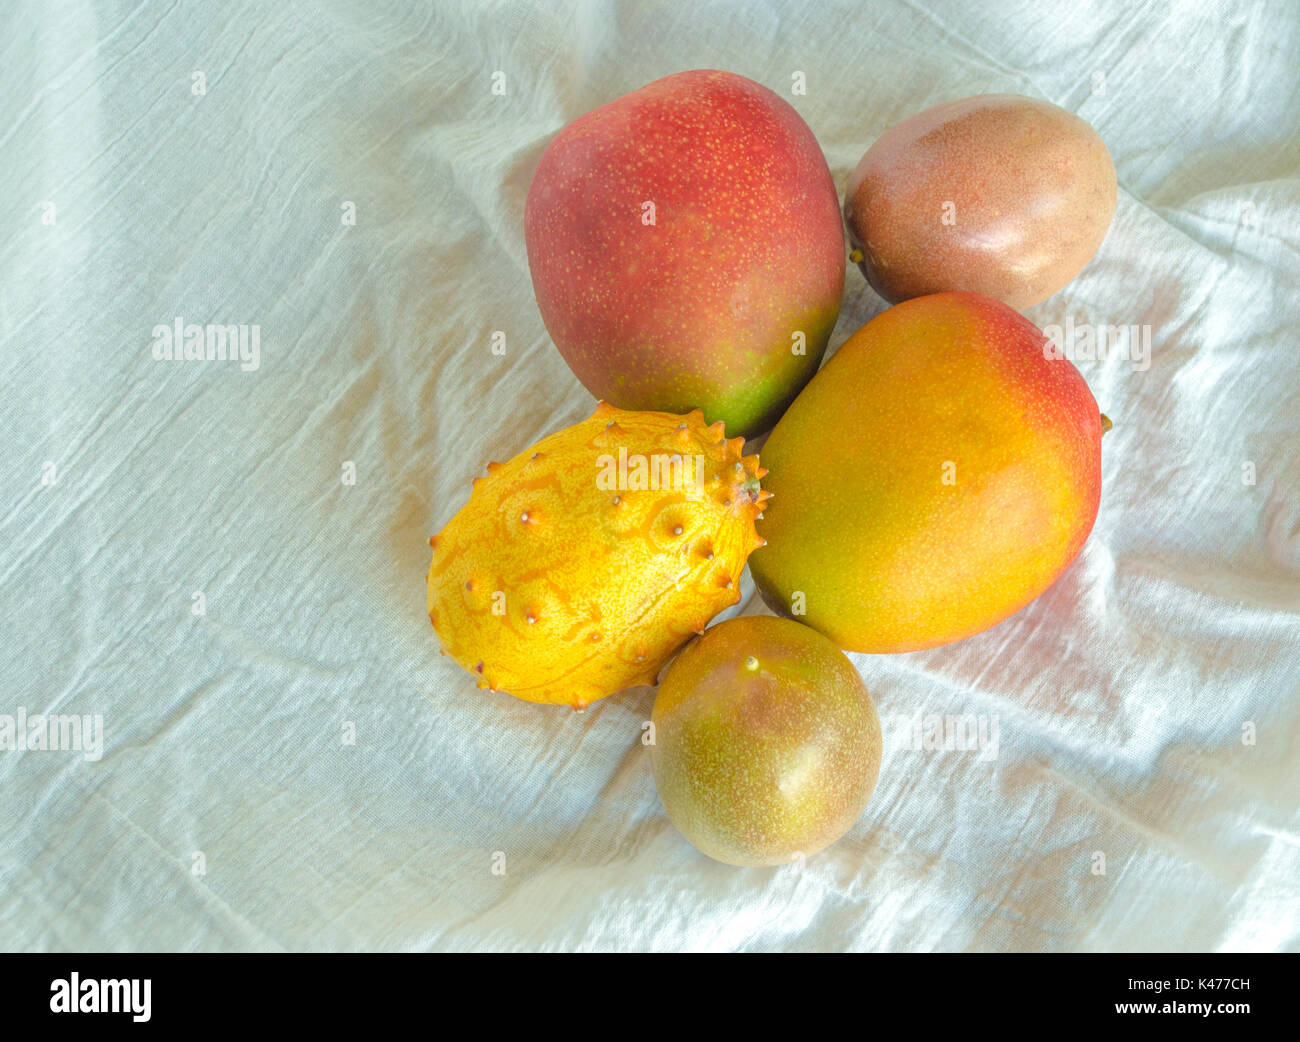 mangoes, passion fruit and melon on a white cloth viewed from above - Stock Image